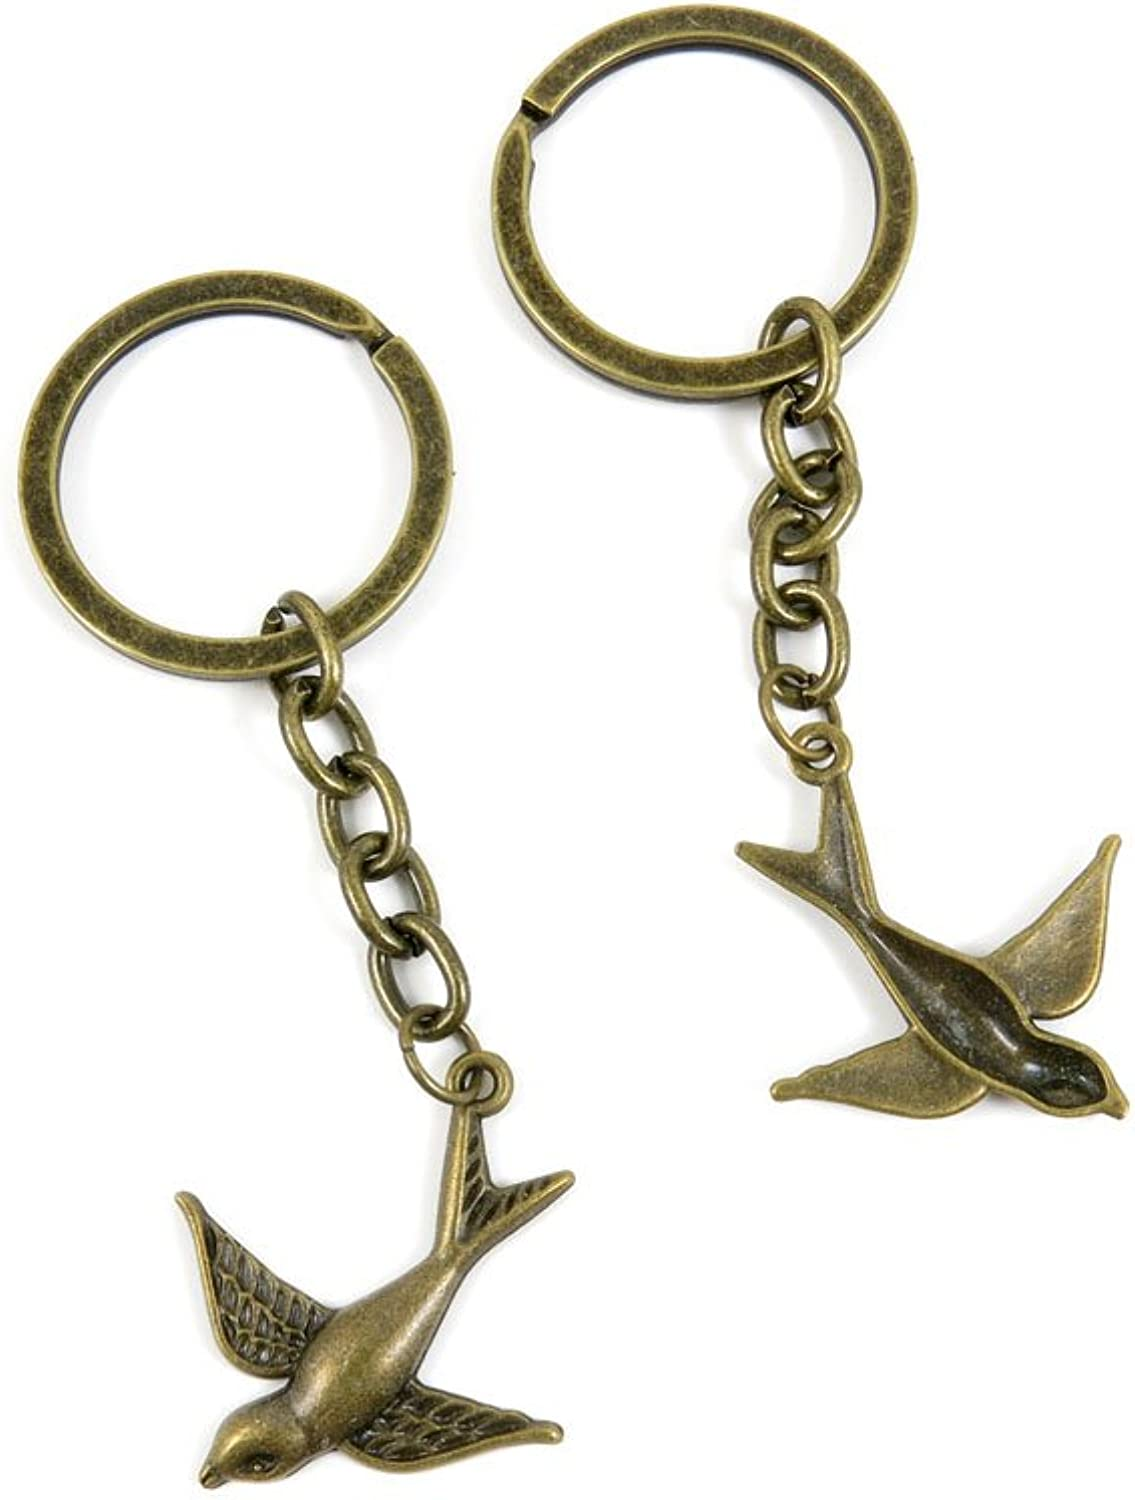 80 PCS Keyring Car Door Key Ring Tag Chain Keychain Wholesale Suppliers Charms Handmade A1IW4 Swallow